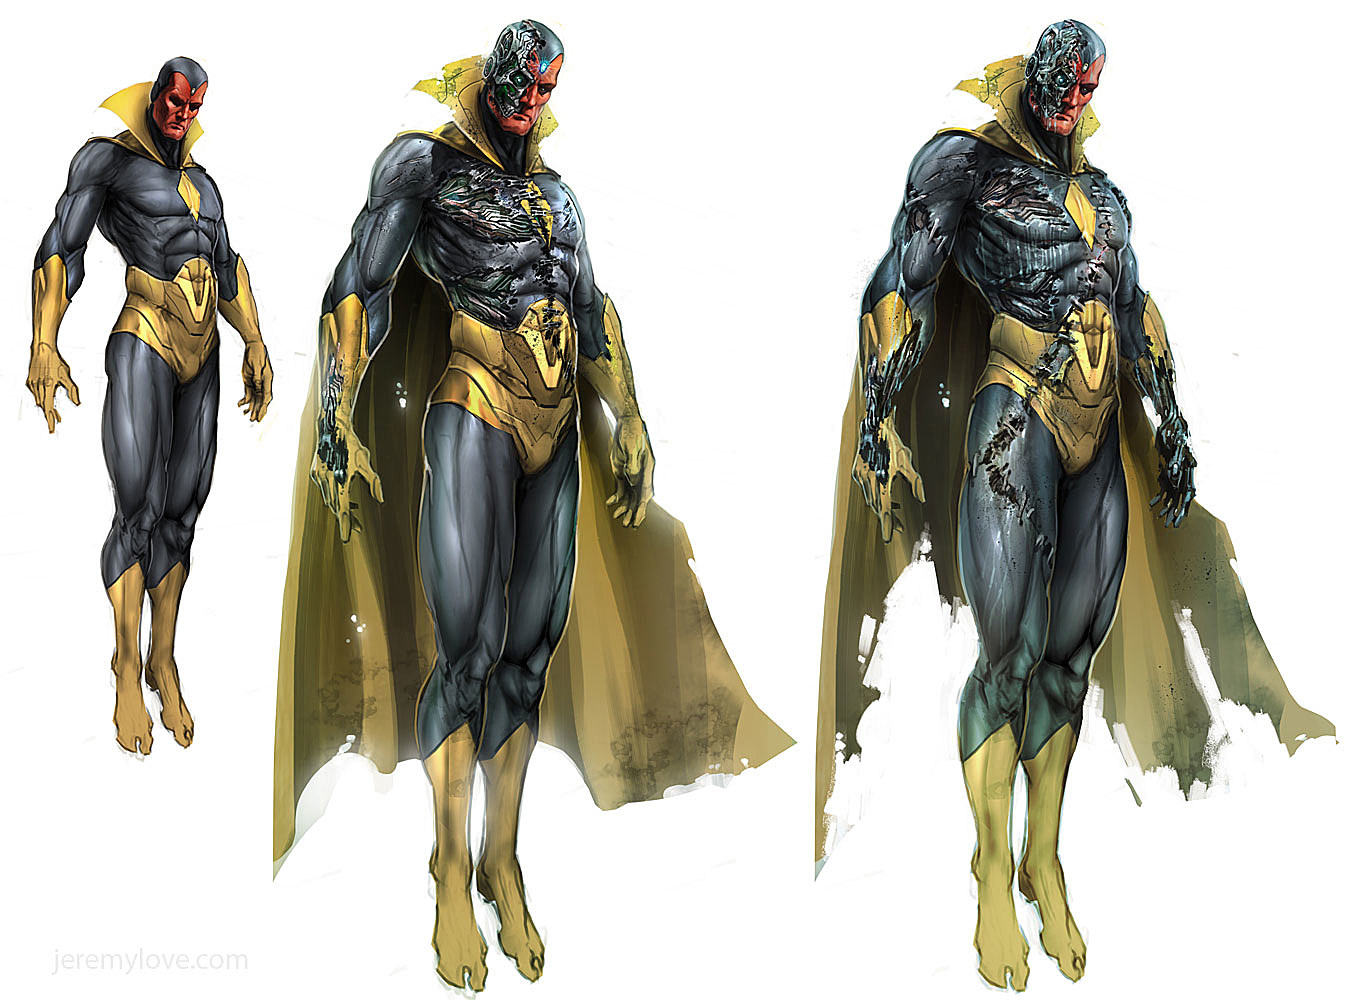 Shapeshifter Character Design : Canceled skrull filled avengers project yields tons of